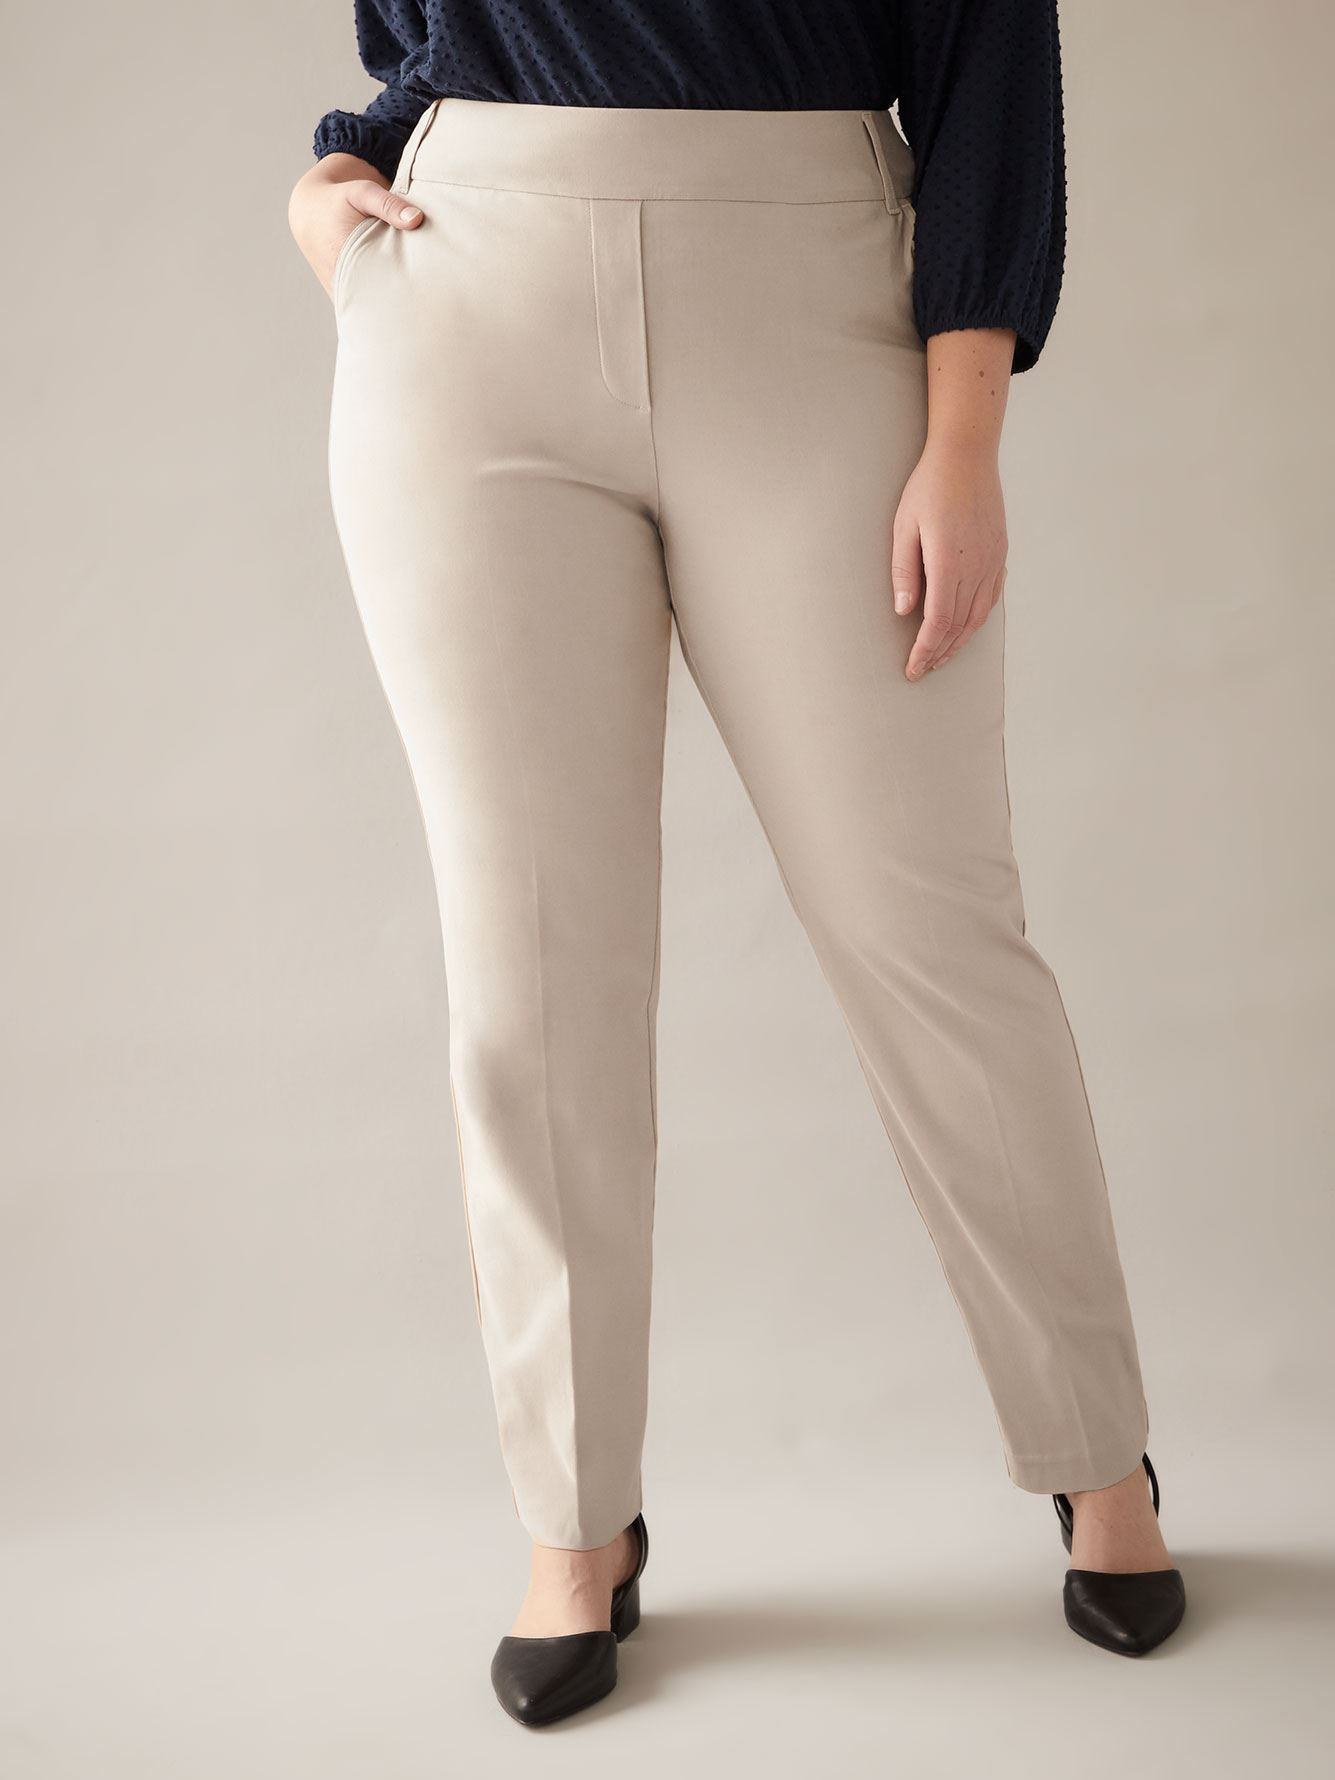 Pantalon droit Savvy- In Every Story